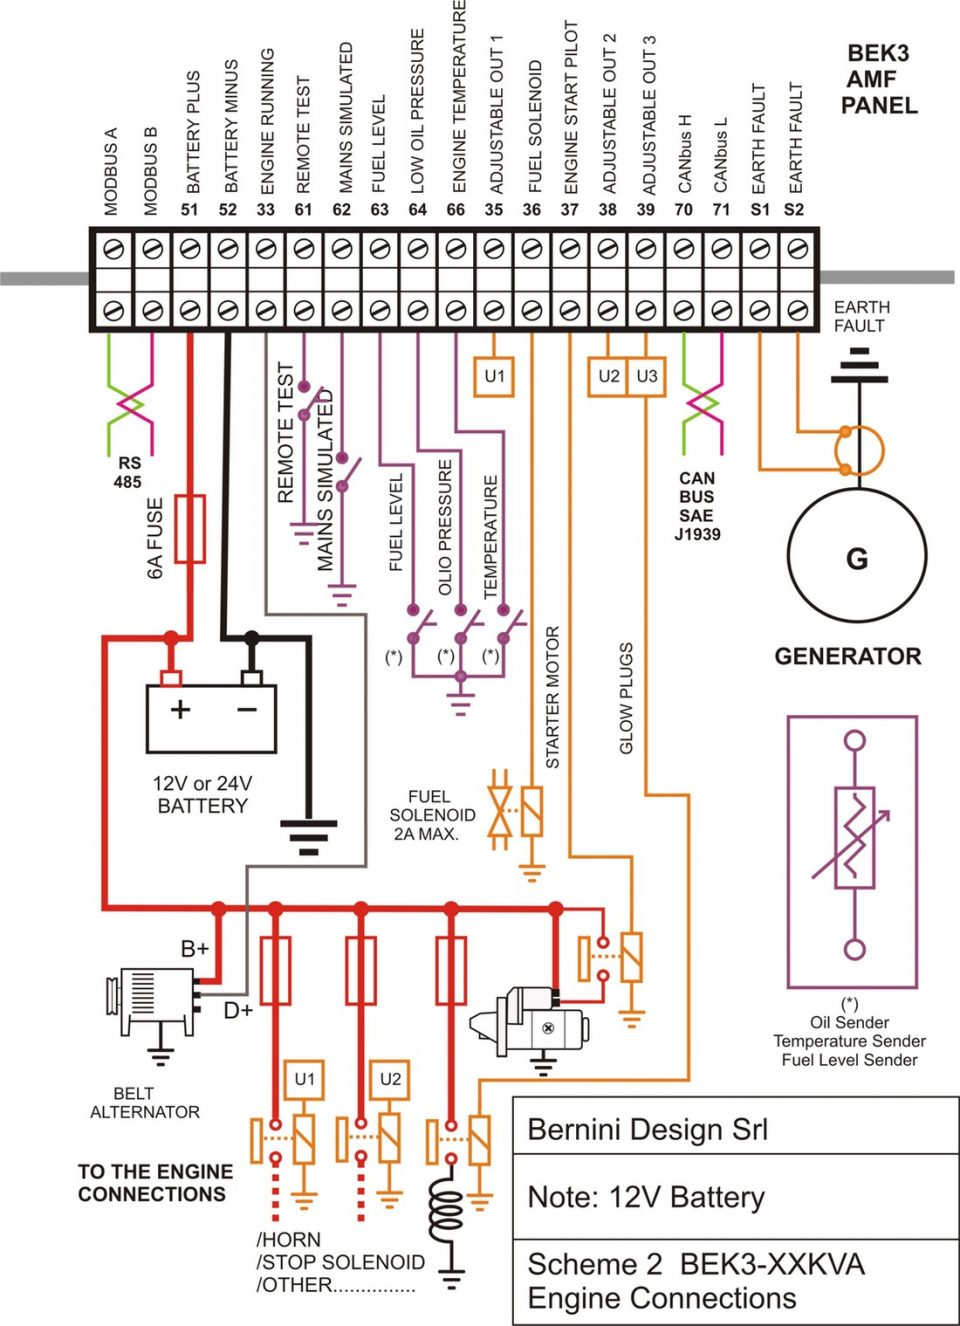 Amf Panel Wiring Diagram | Wiring Liry on